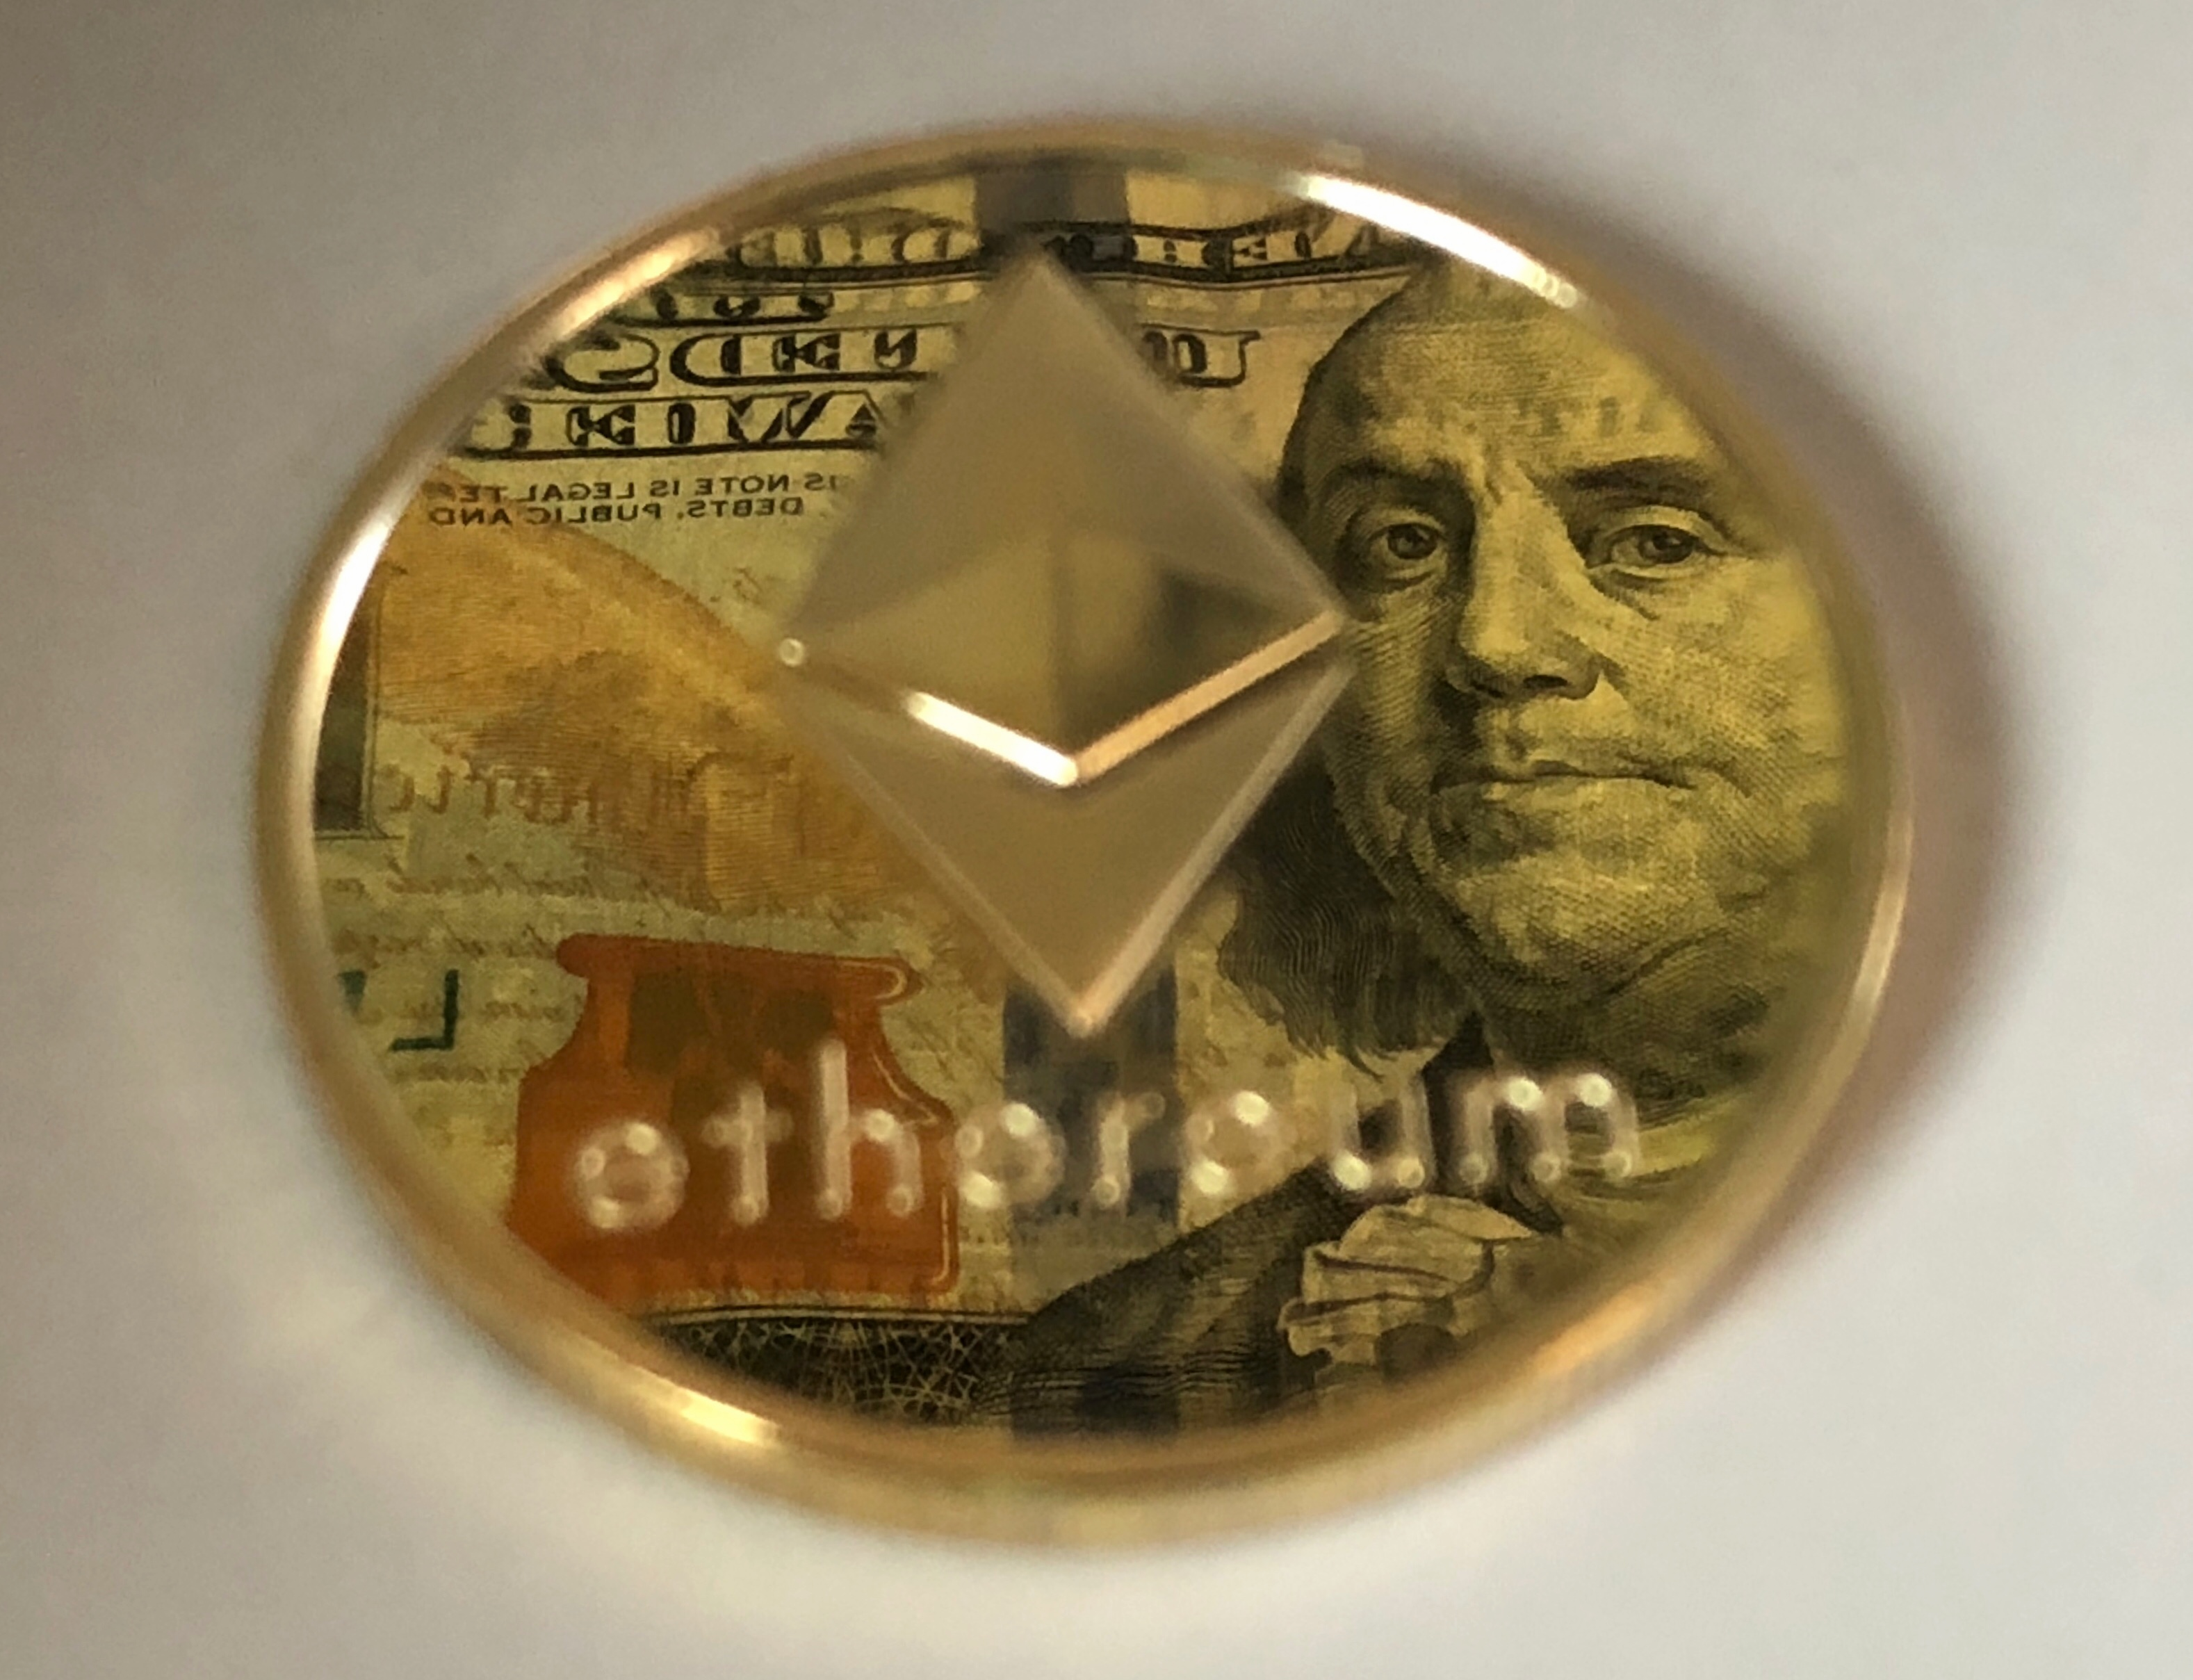 Free stock photo of coin, cryptocurrency, Etherum